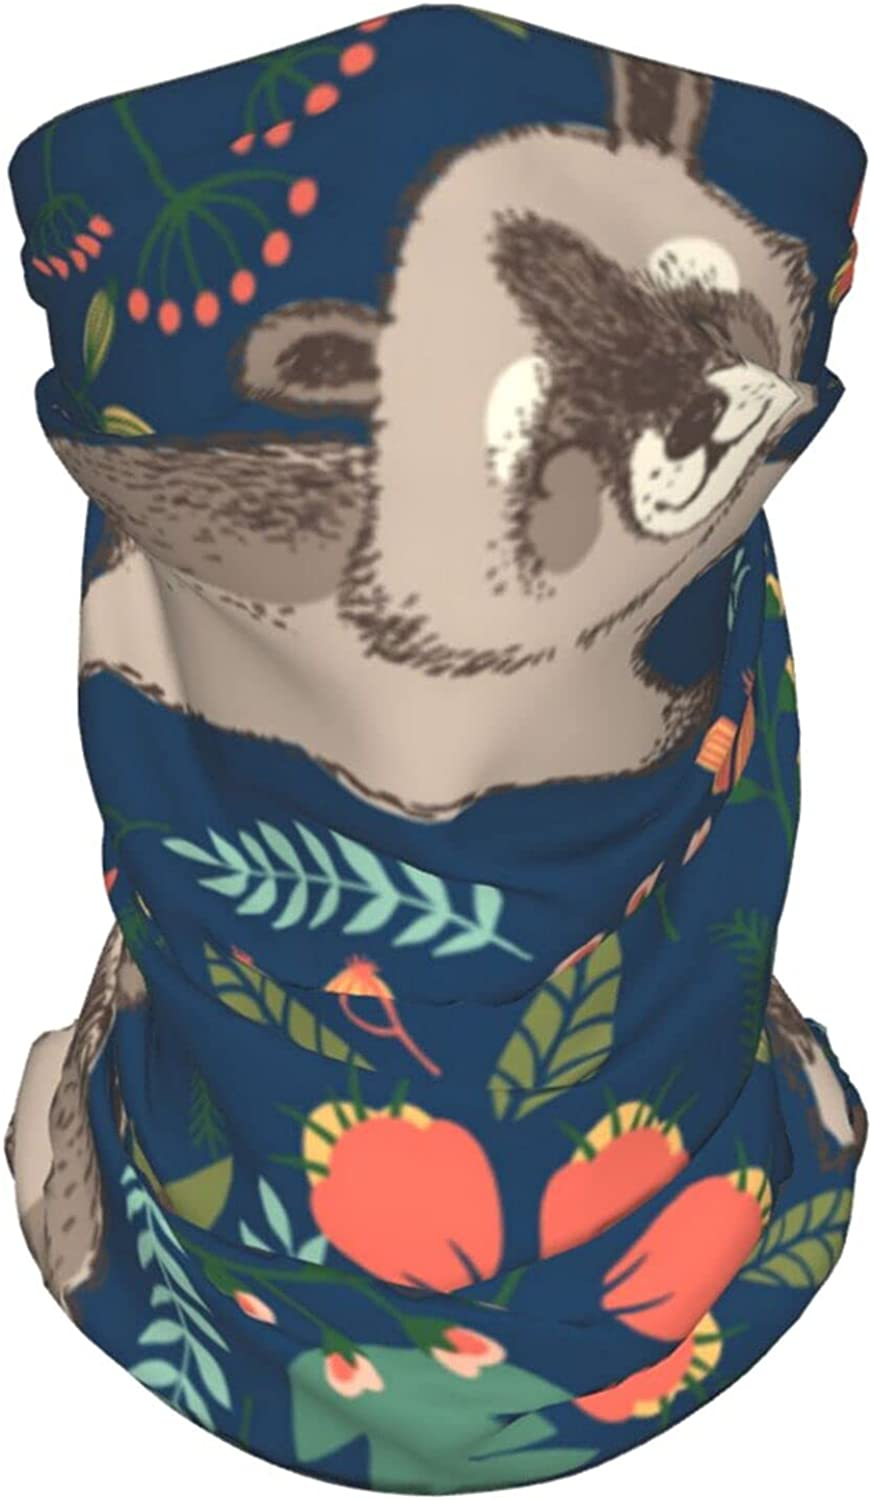 Cute Raccoon Summer Ice Silk Breathable Face Mask Neck Gaiter Scarf Bandanas for Fishing,Hiking,Running,Motorcycle and Daily Wear